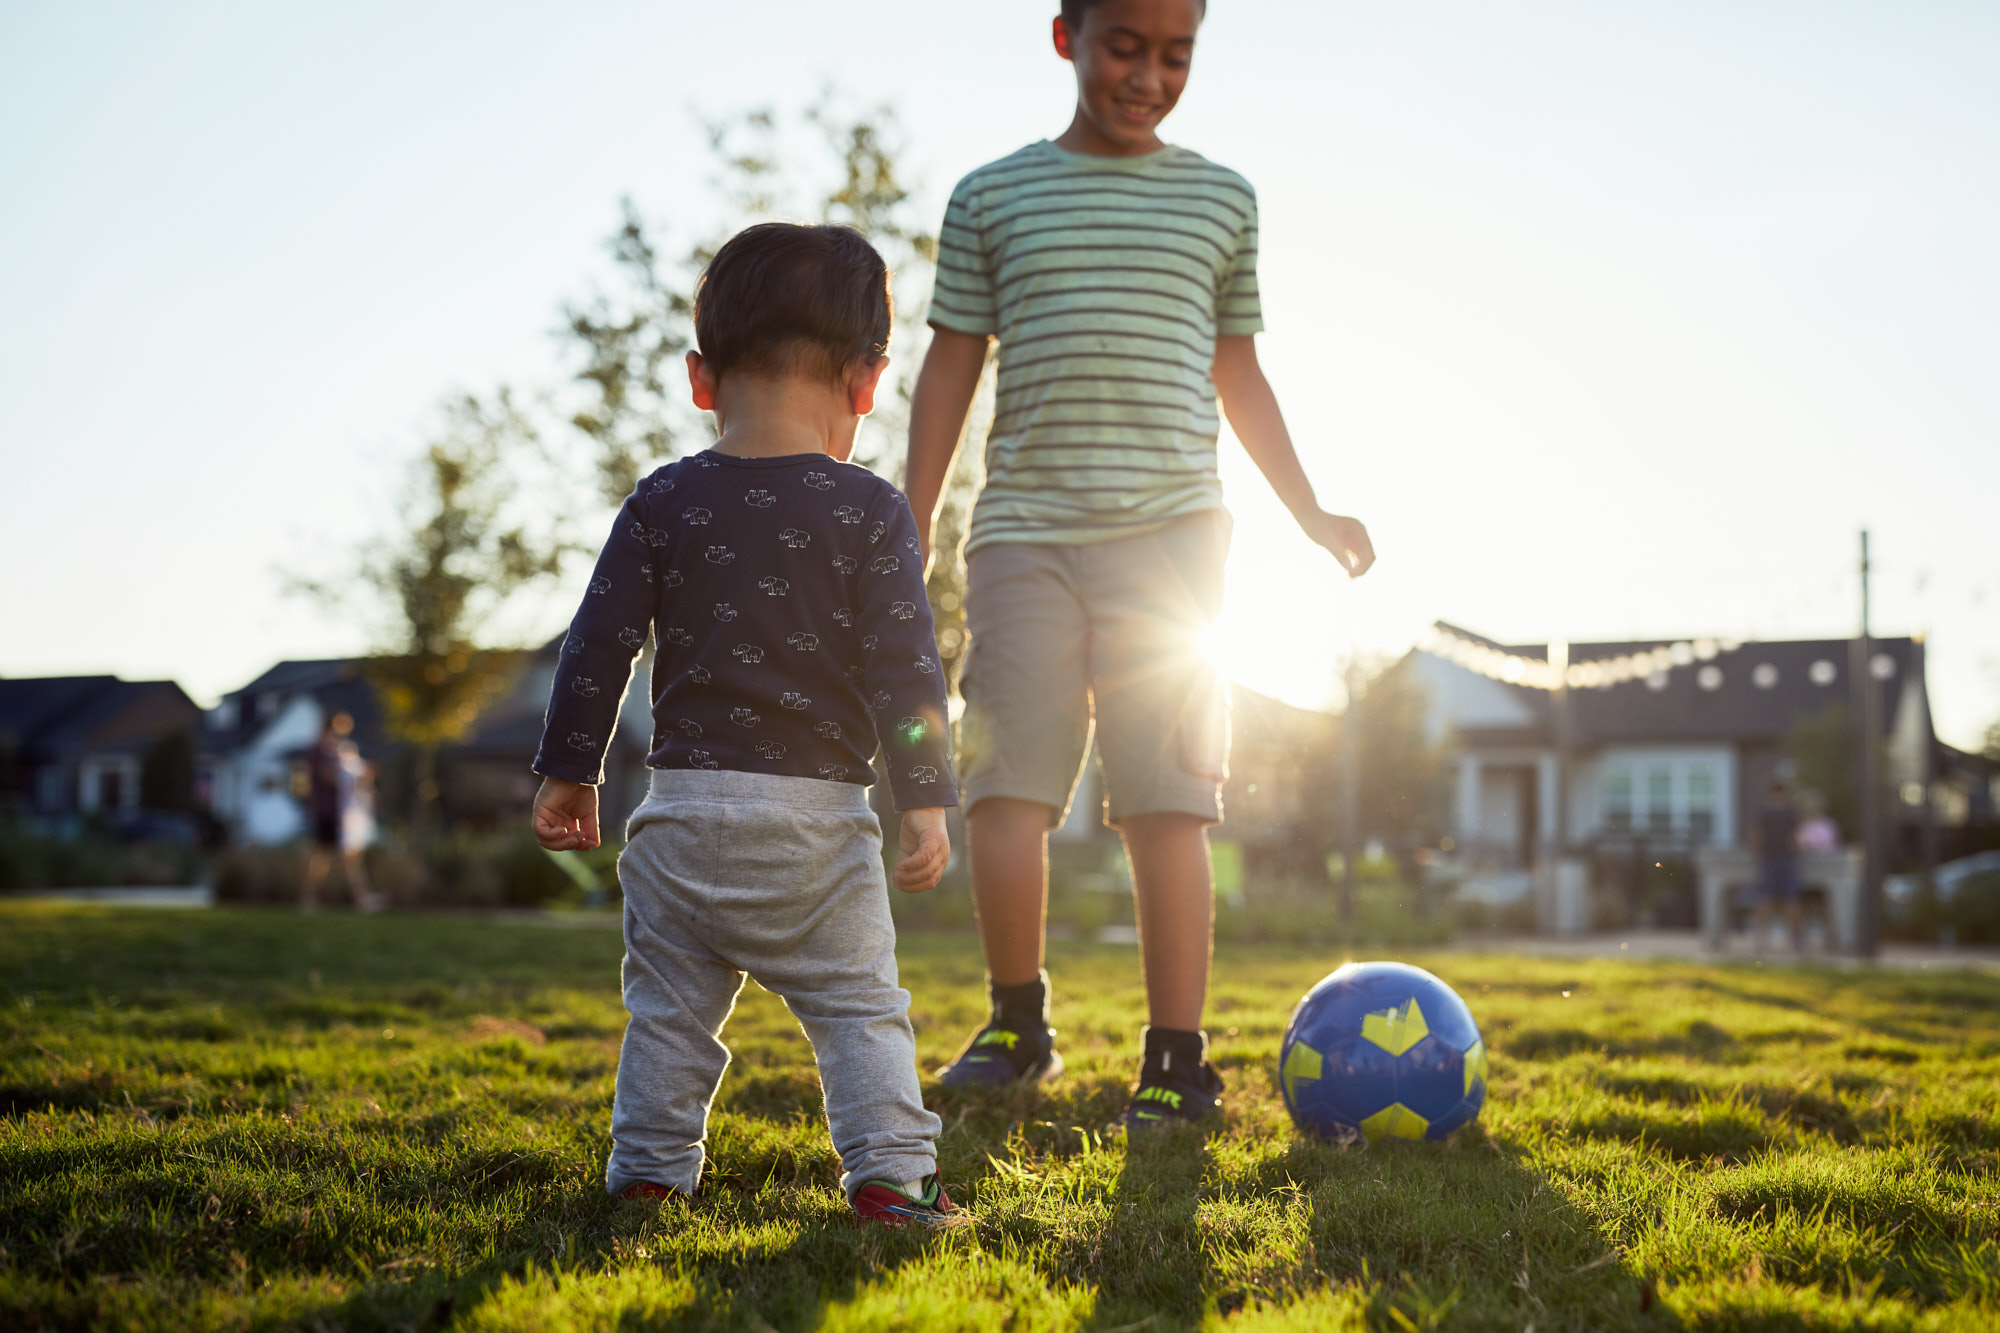 Brothers Play Soccer| Lifestyle Photography